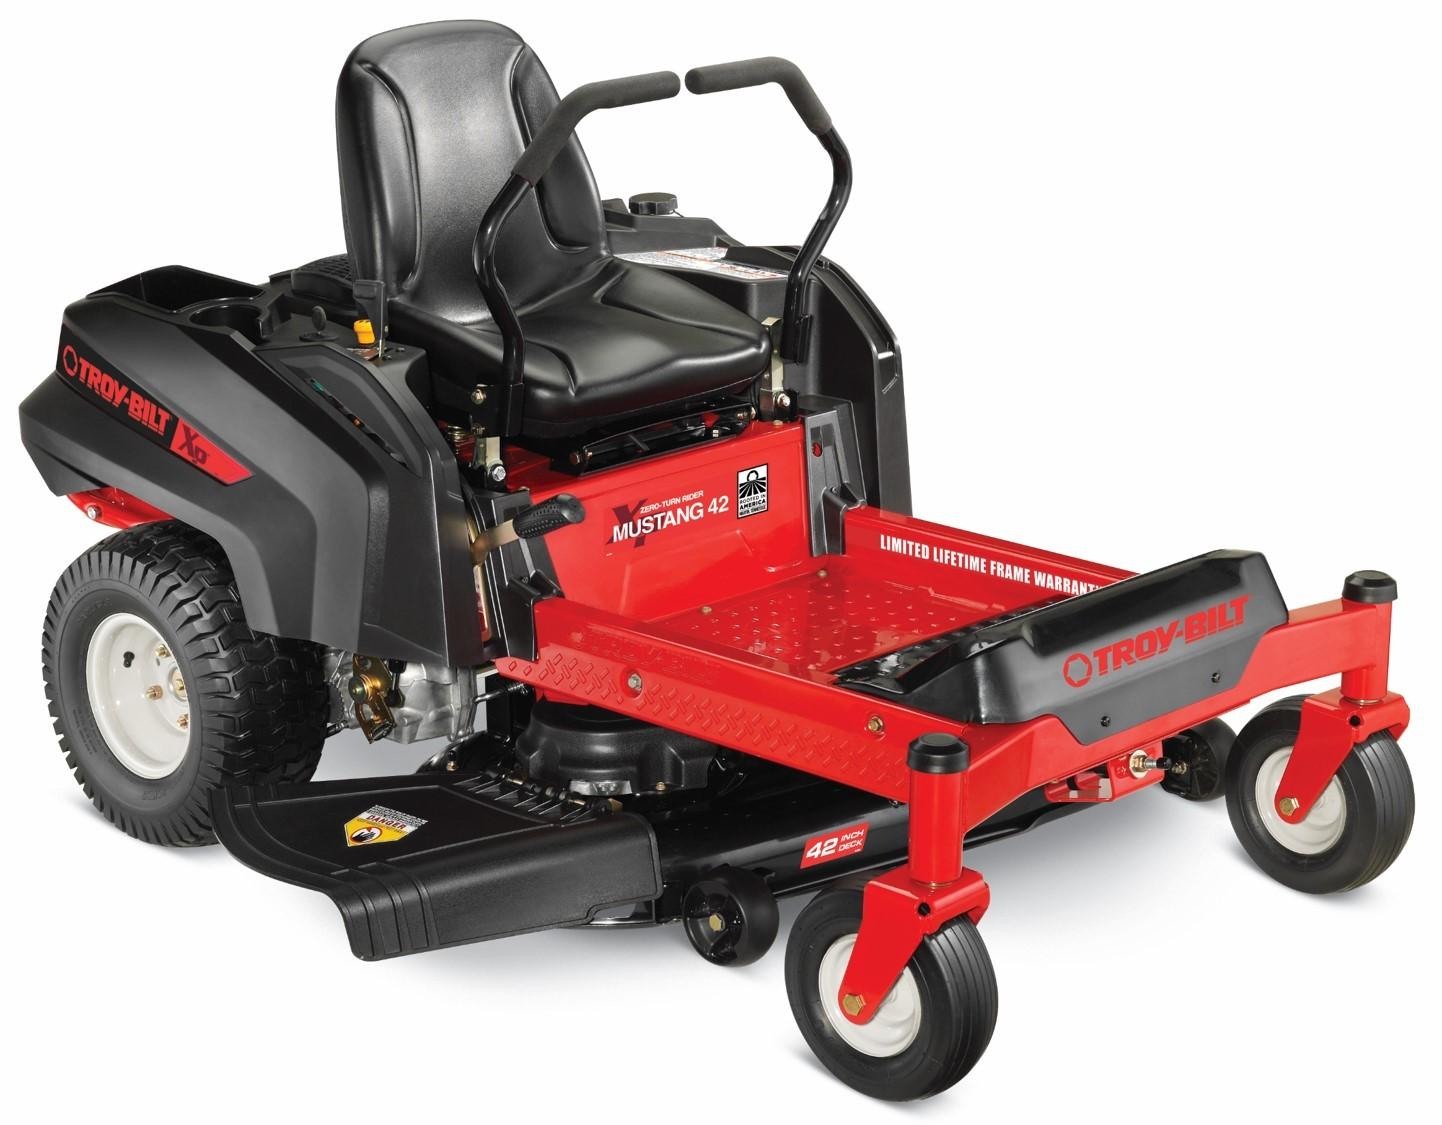 Amazon com : Troy-Bilt 42 XP Mustang 22HP 42-inch Zero Turn